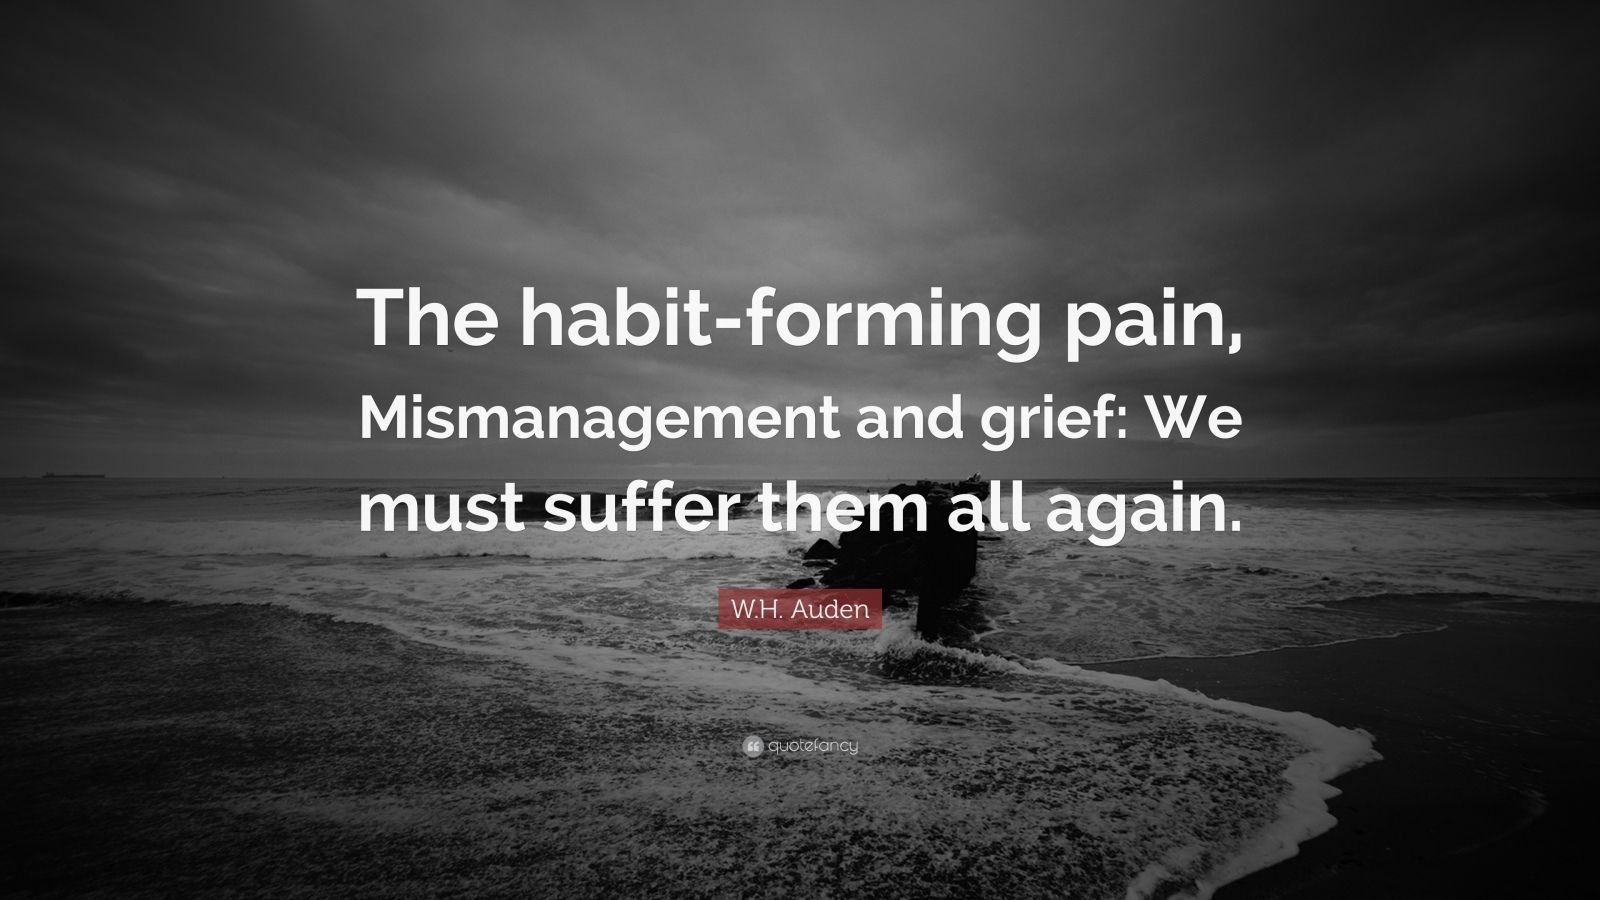 """W.H. Auden Quote: """"The habit-forming pain, Mismanagement and grief: We must suffer them all again."""""""